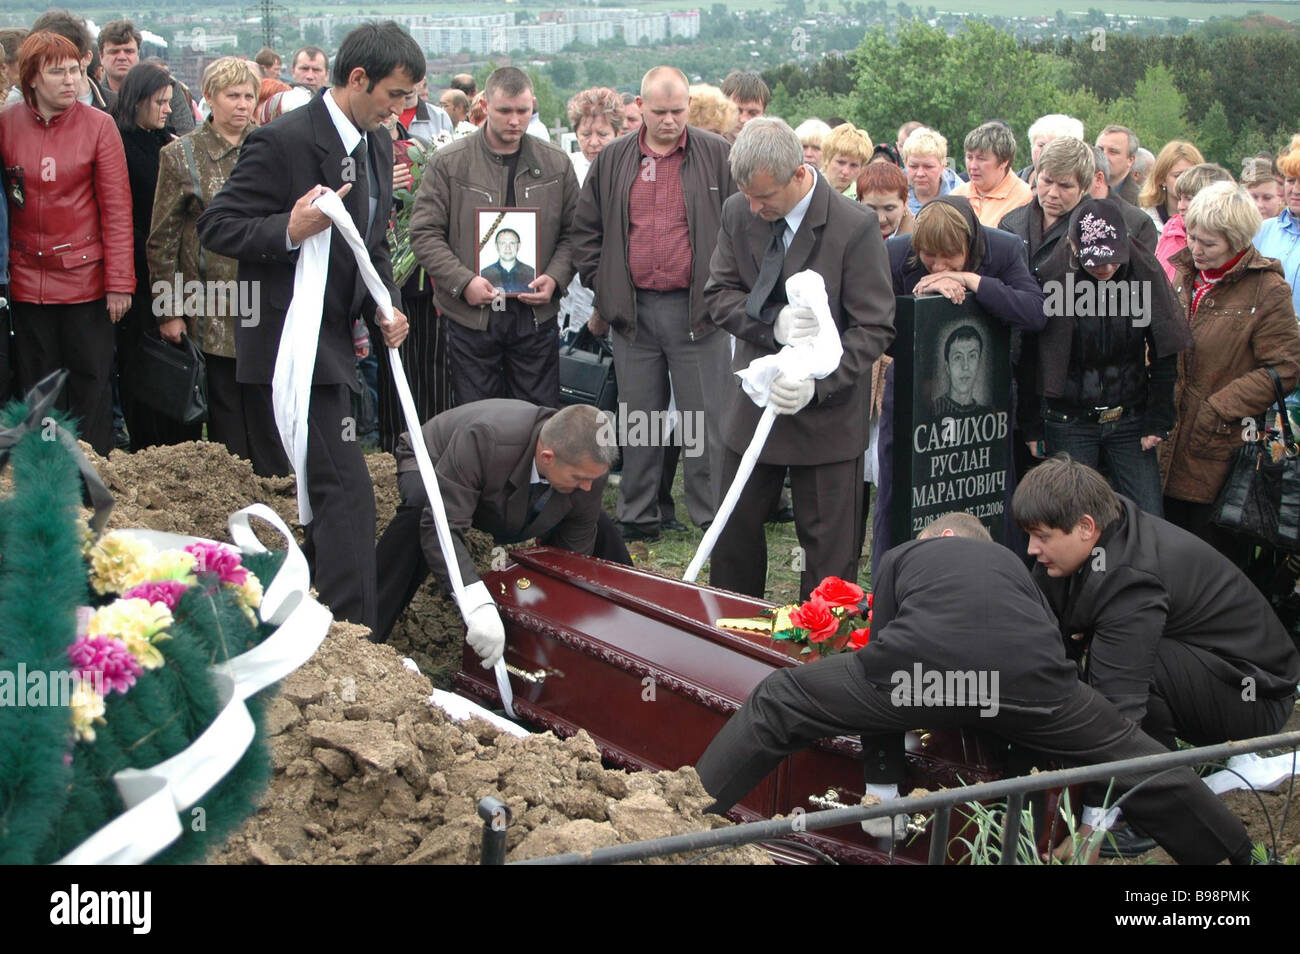 Funeral for miners killed in a methane explosion in the Yubileynaya mine took place at the Baydayevskoye Cemetery - Stock Image